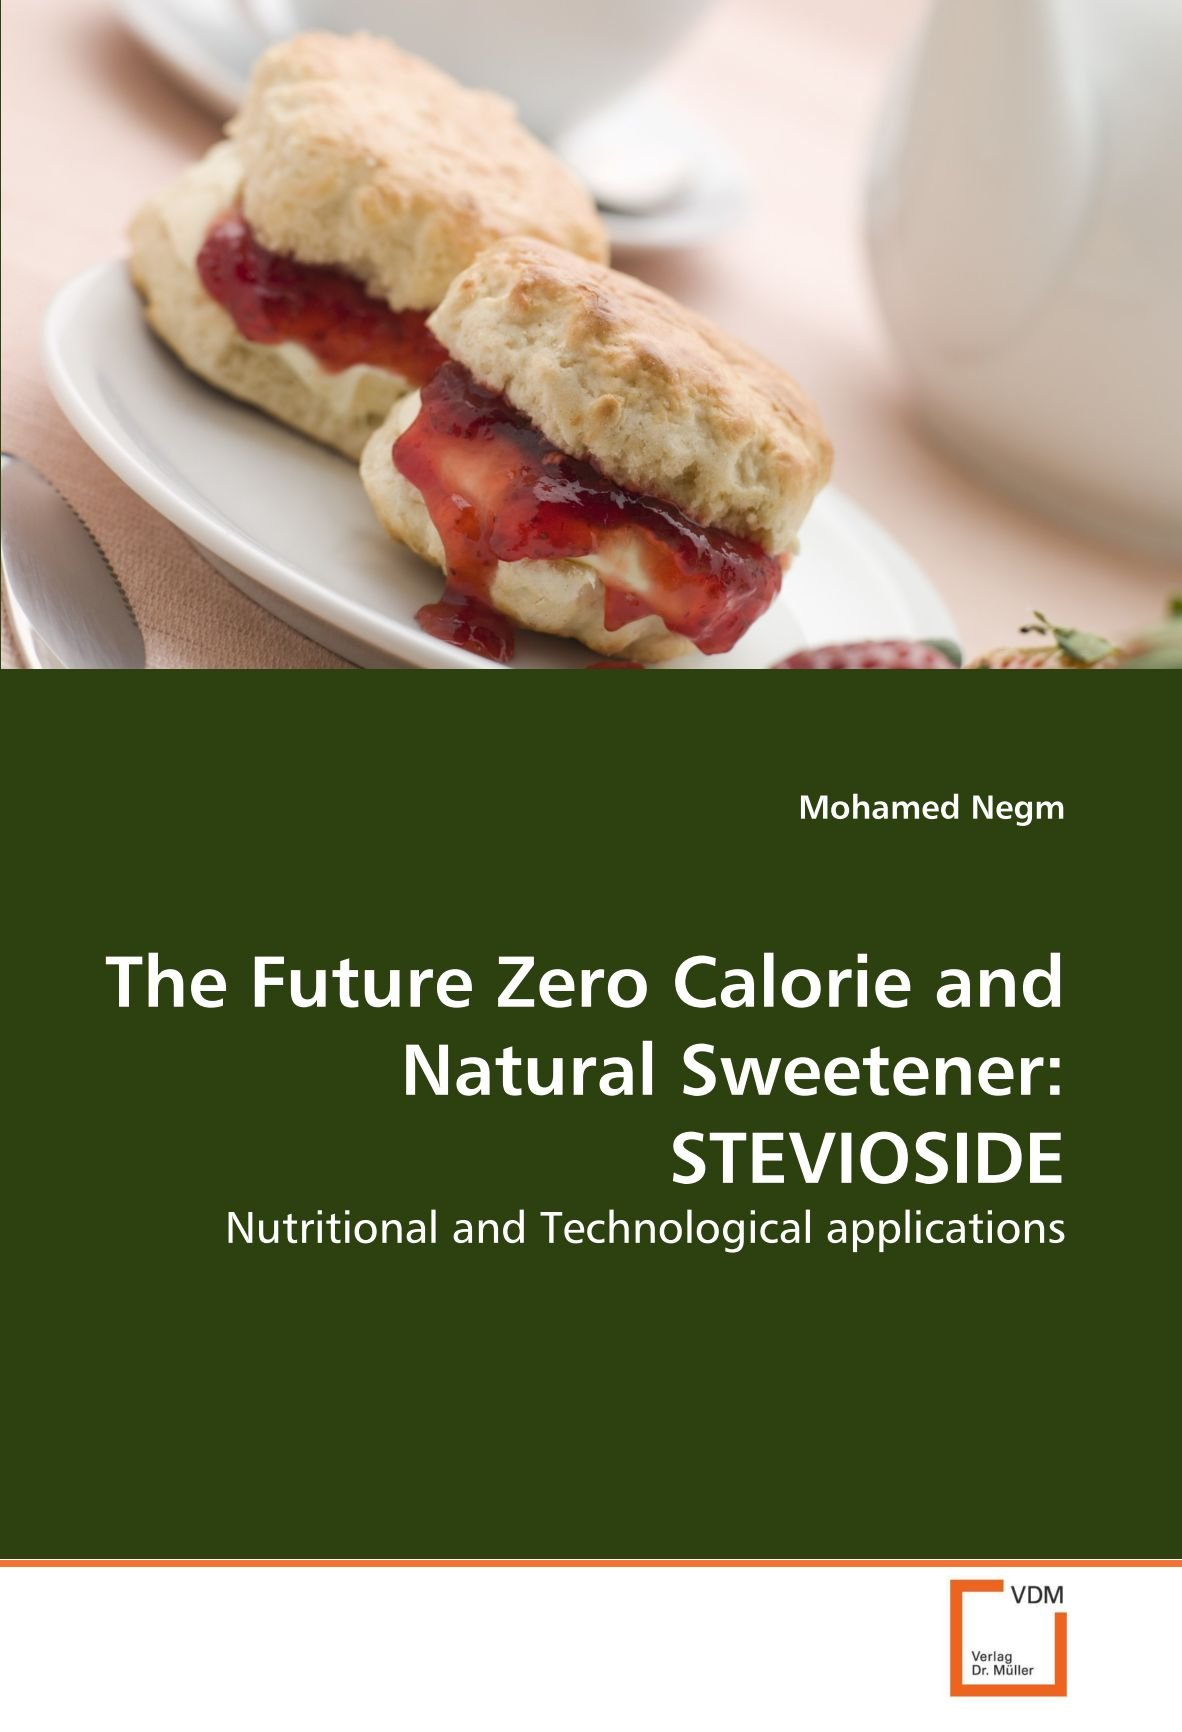 The Future Zero Calorie and Natural Sweetener: STEVIOSIDE: Nutritional and Technological applications ebook